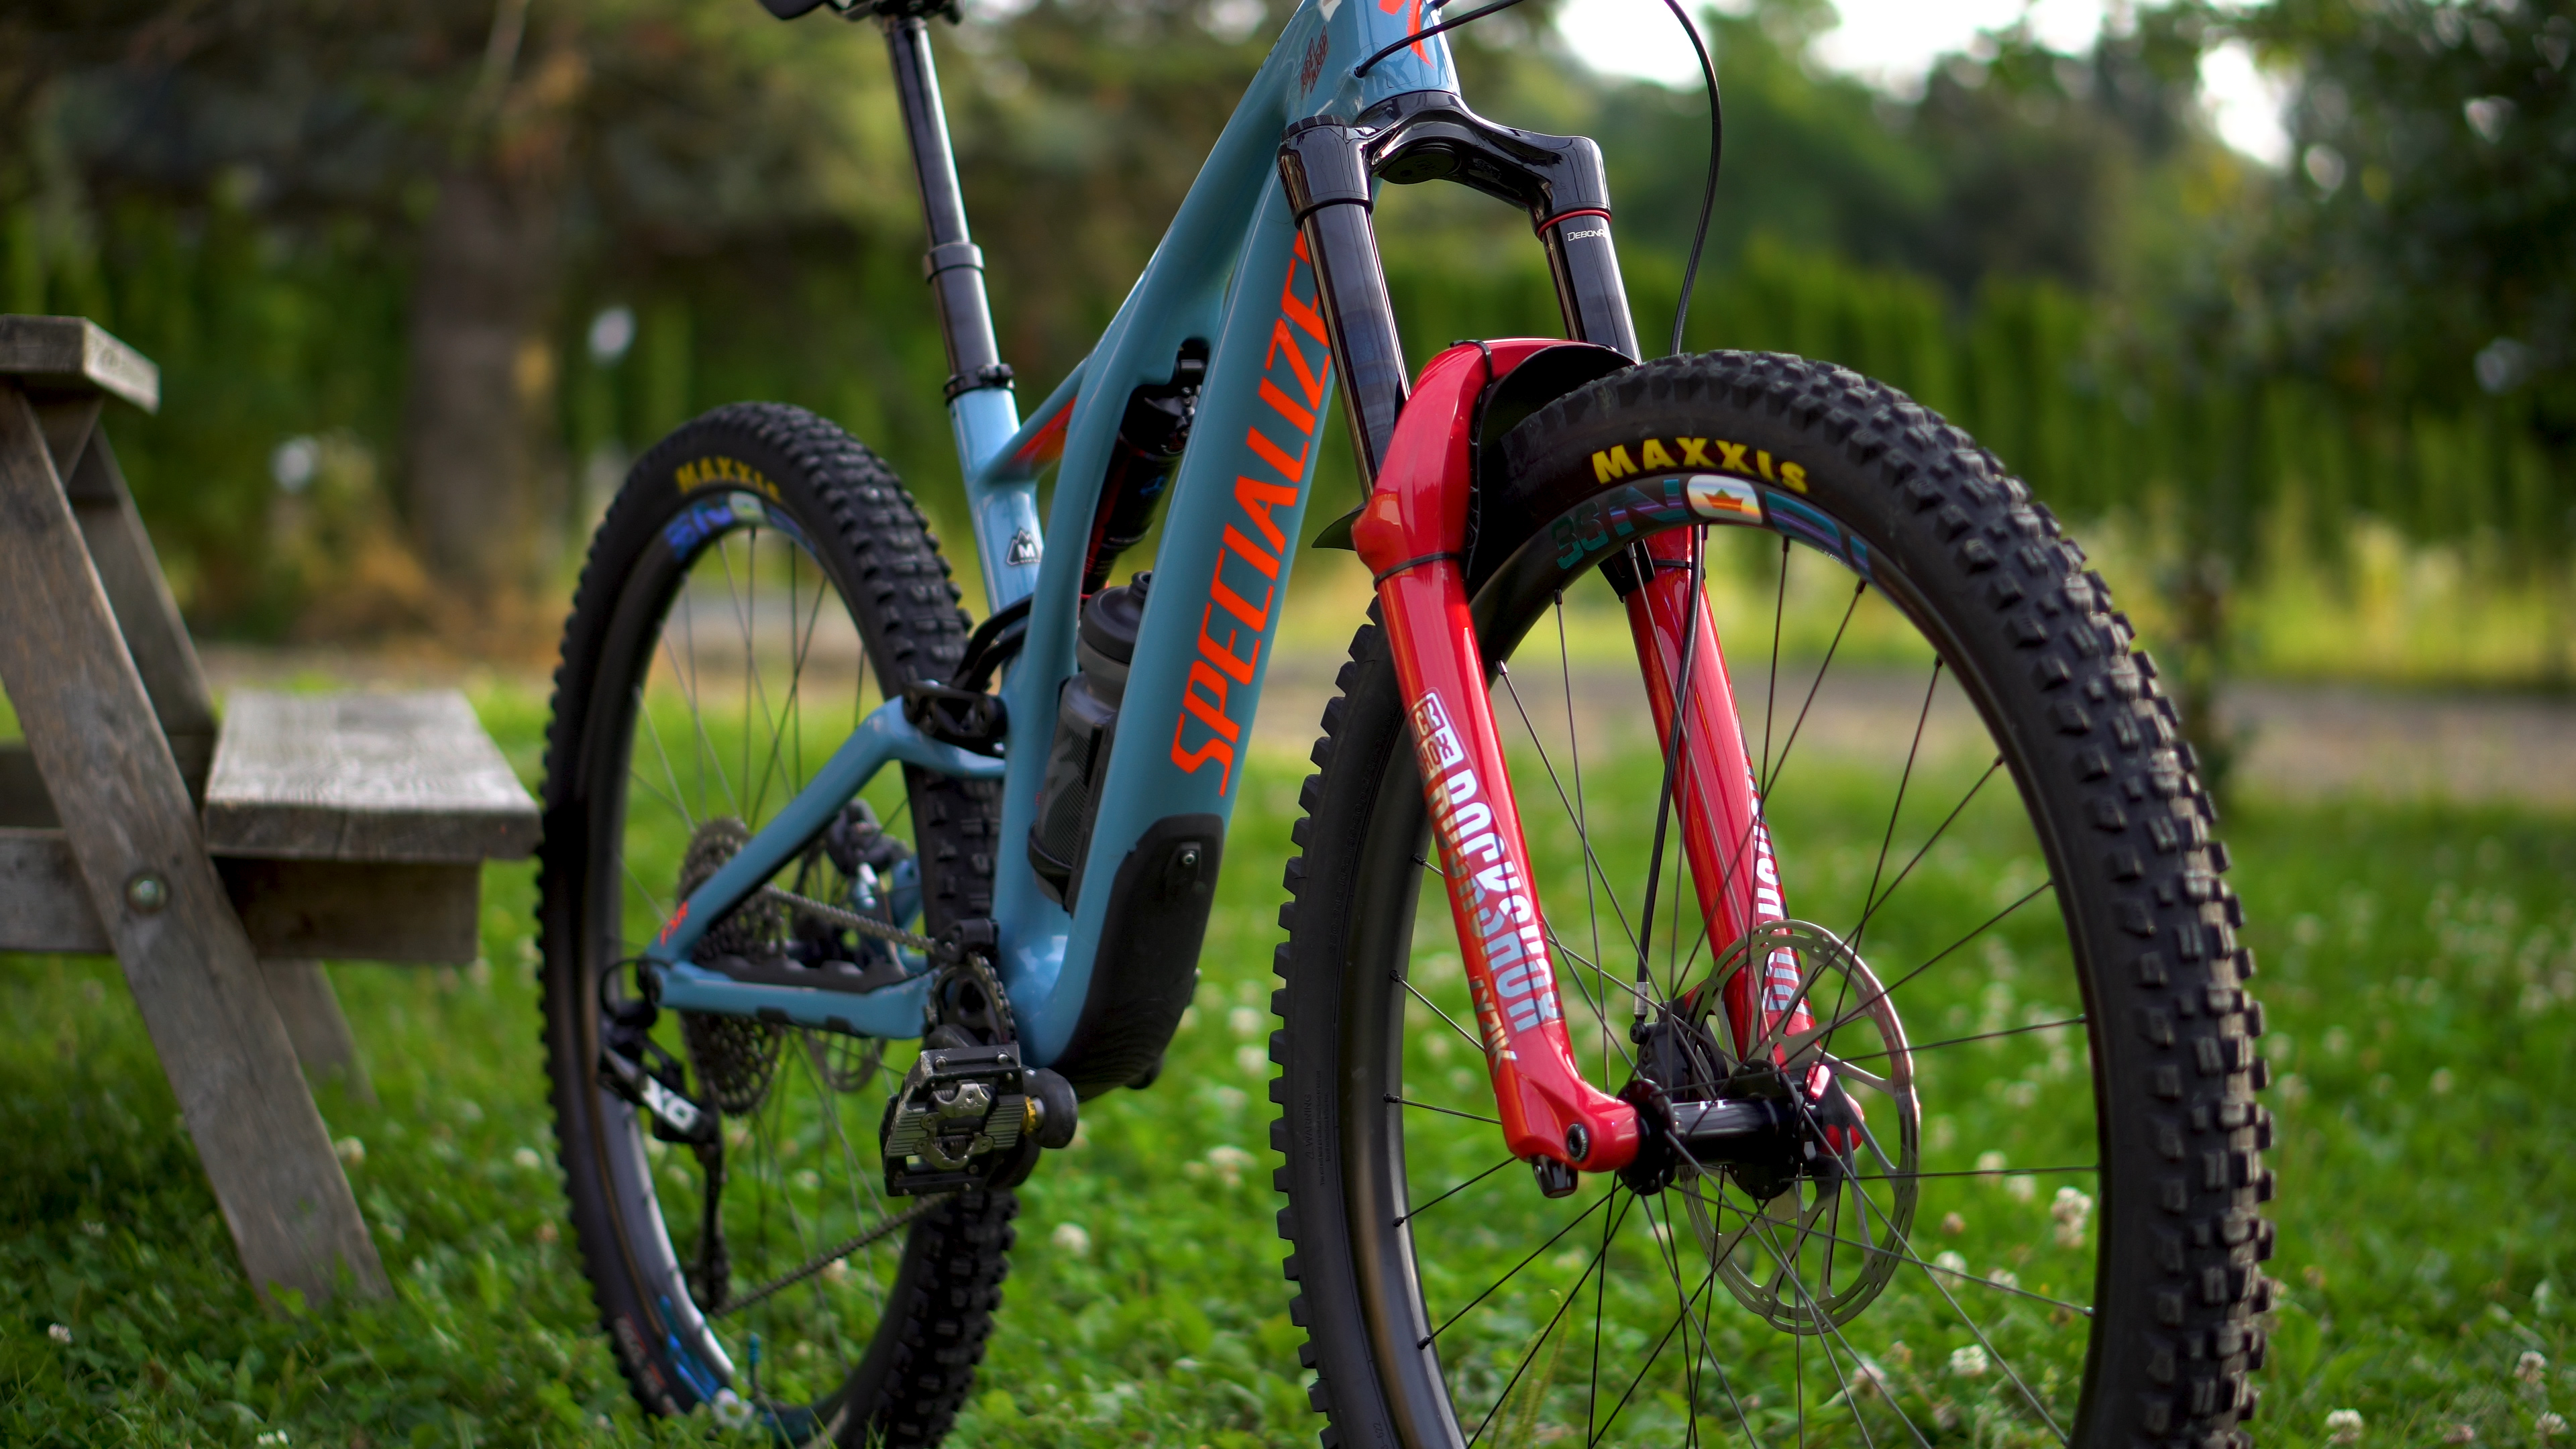 Specialized Stumpjumper Front View